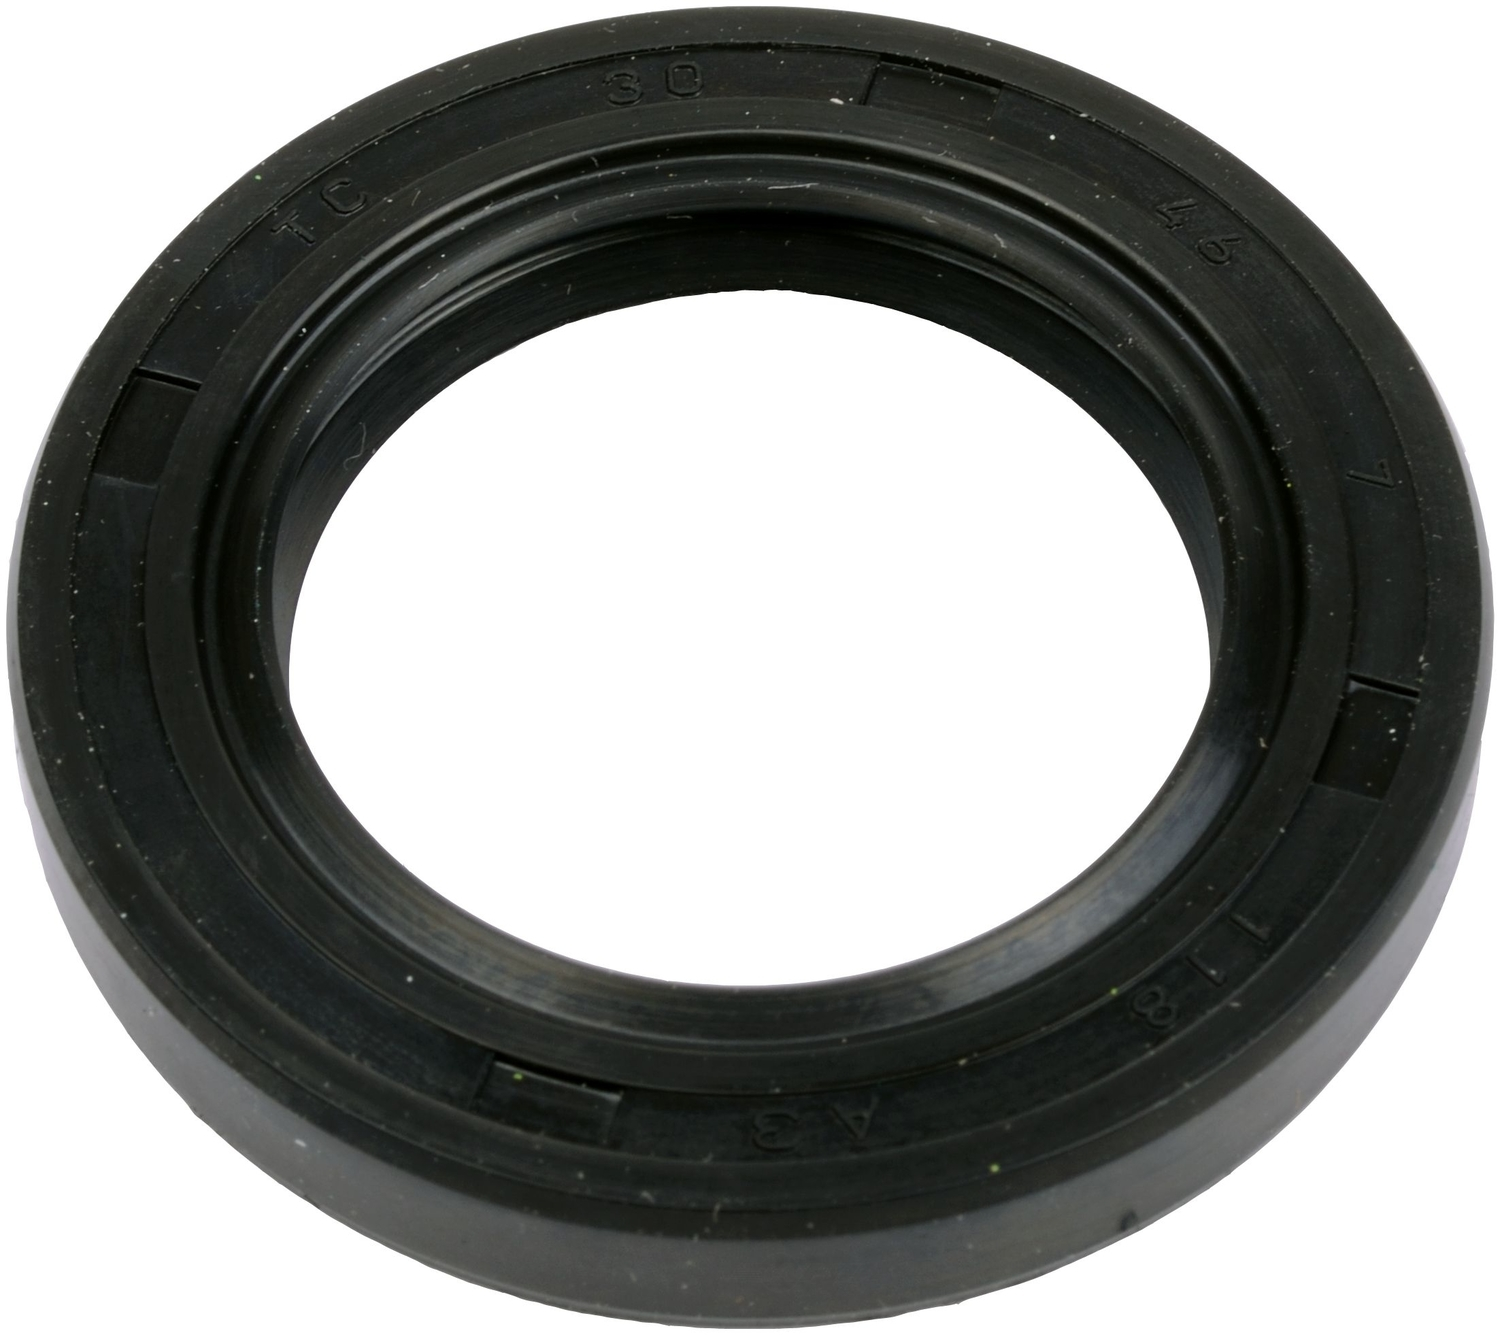 SKF (CHICAGO RAWHIDE) - Manual Trans Input Shaft Seal - SKF 10944